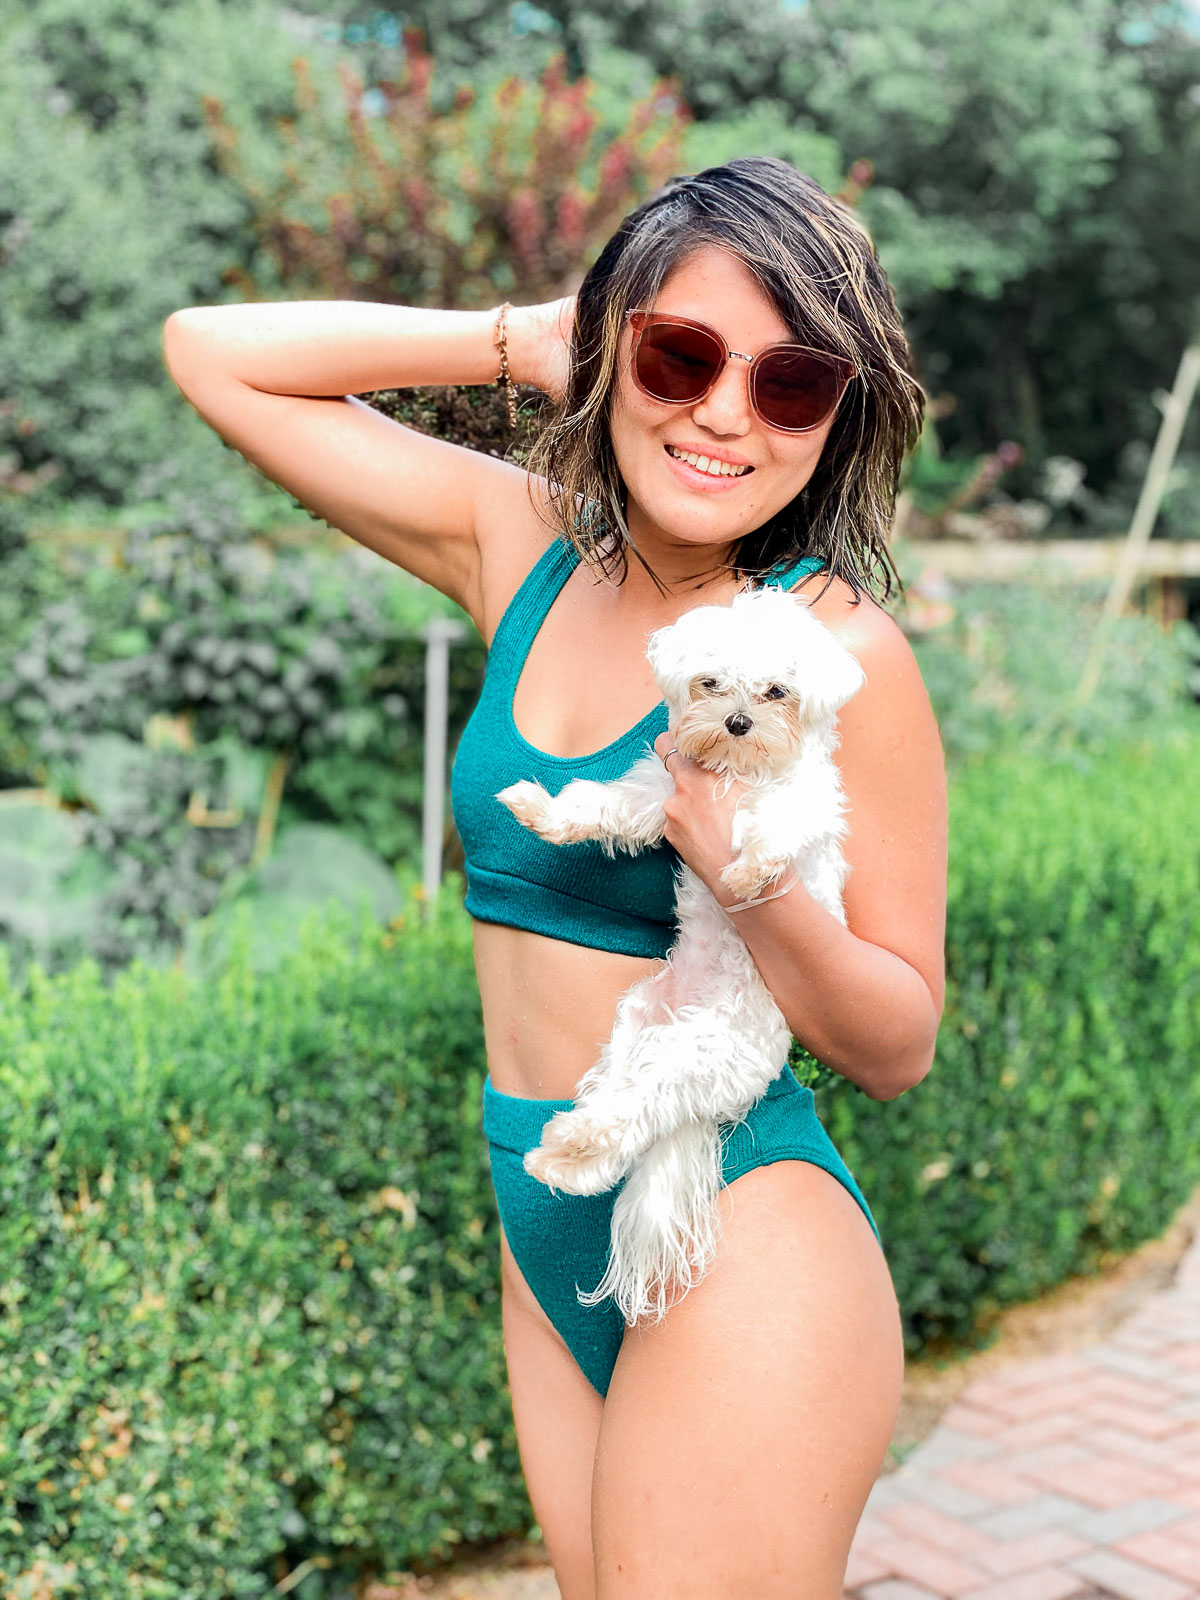 shein swimsuits review